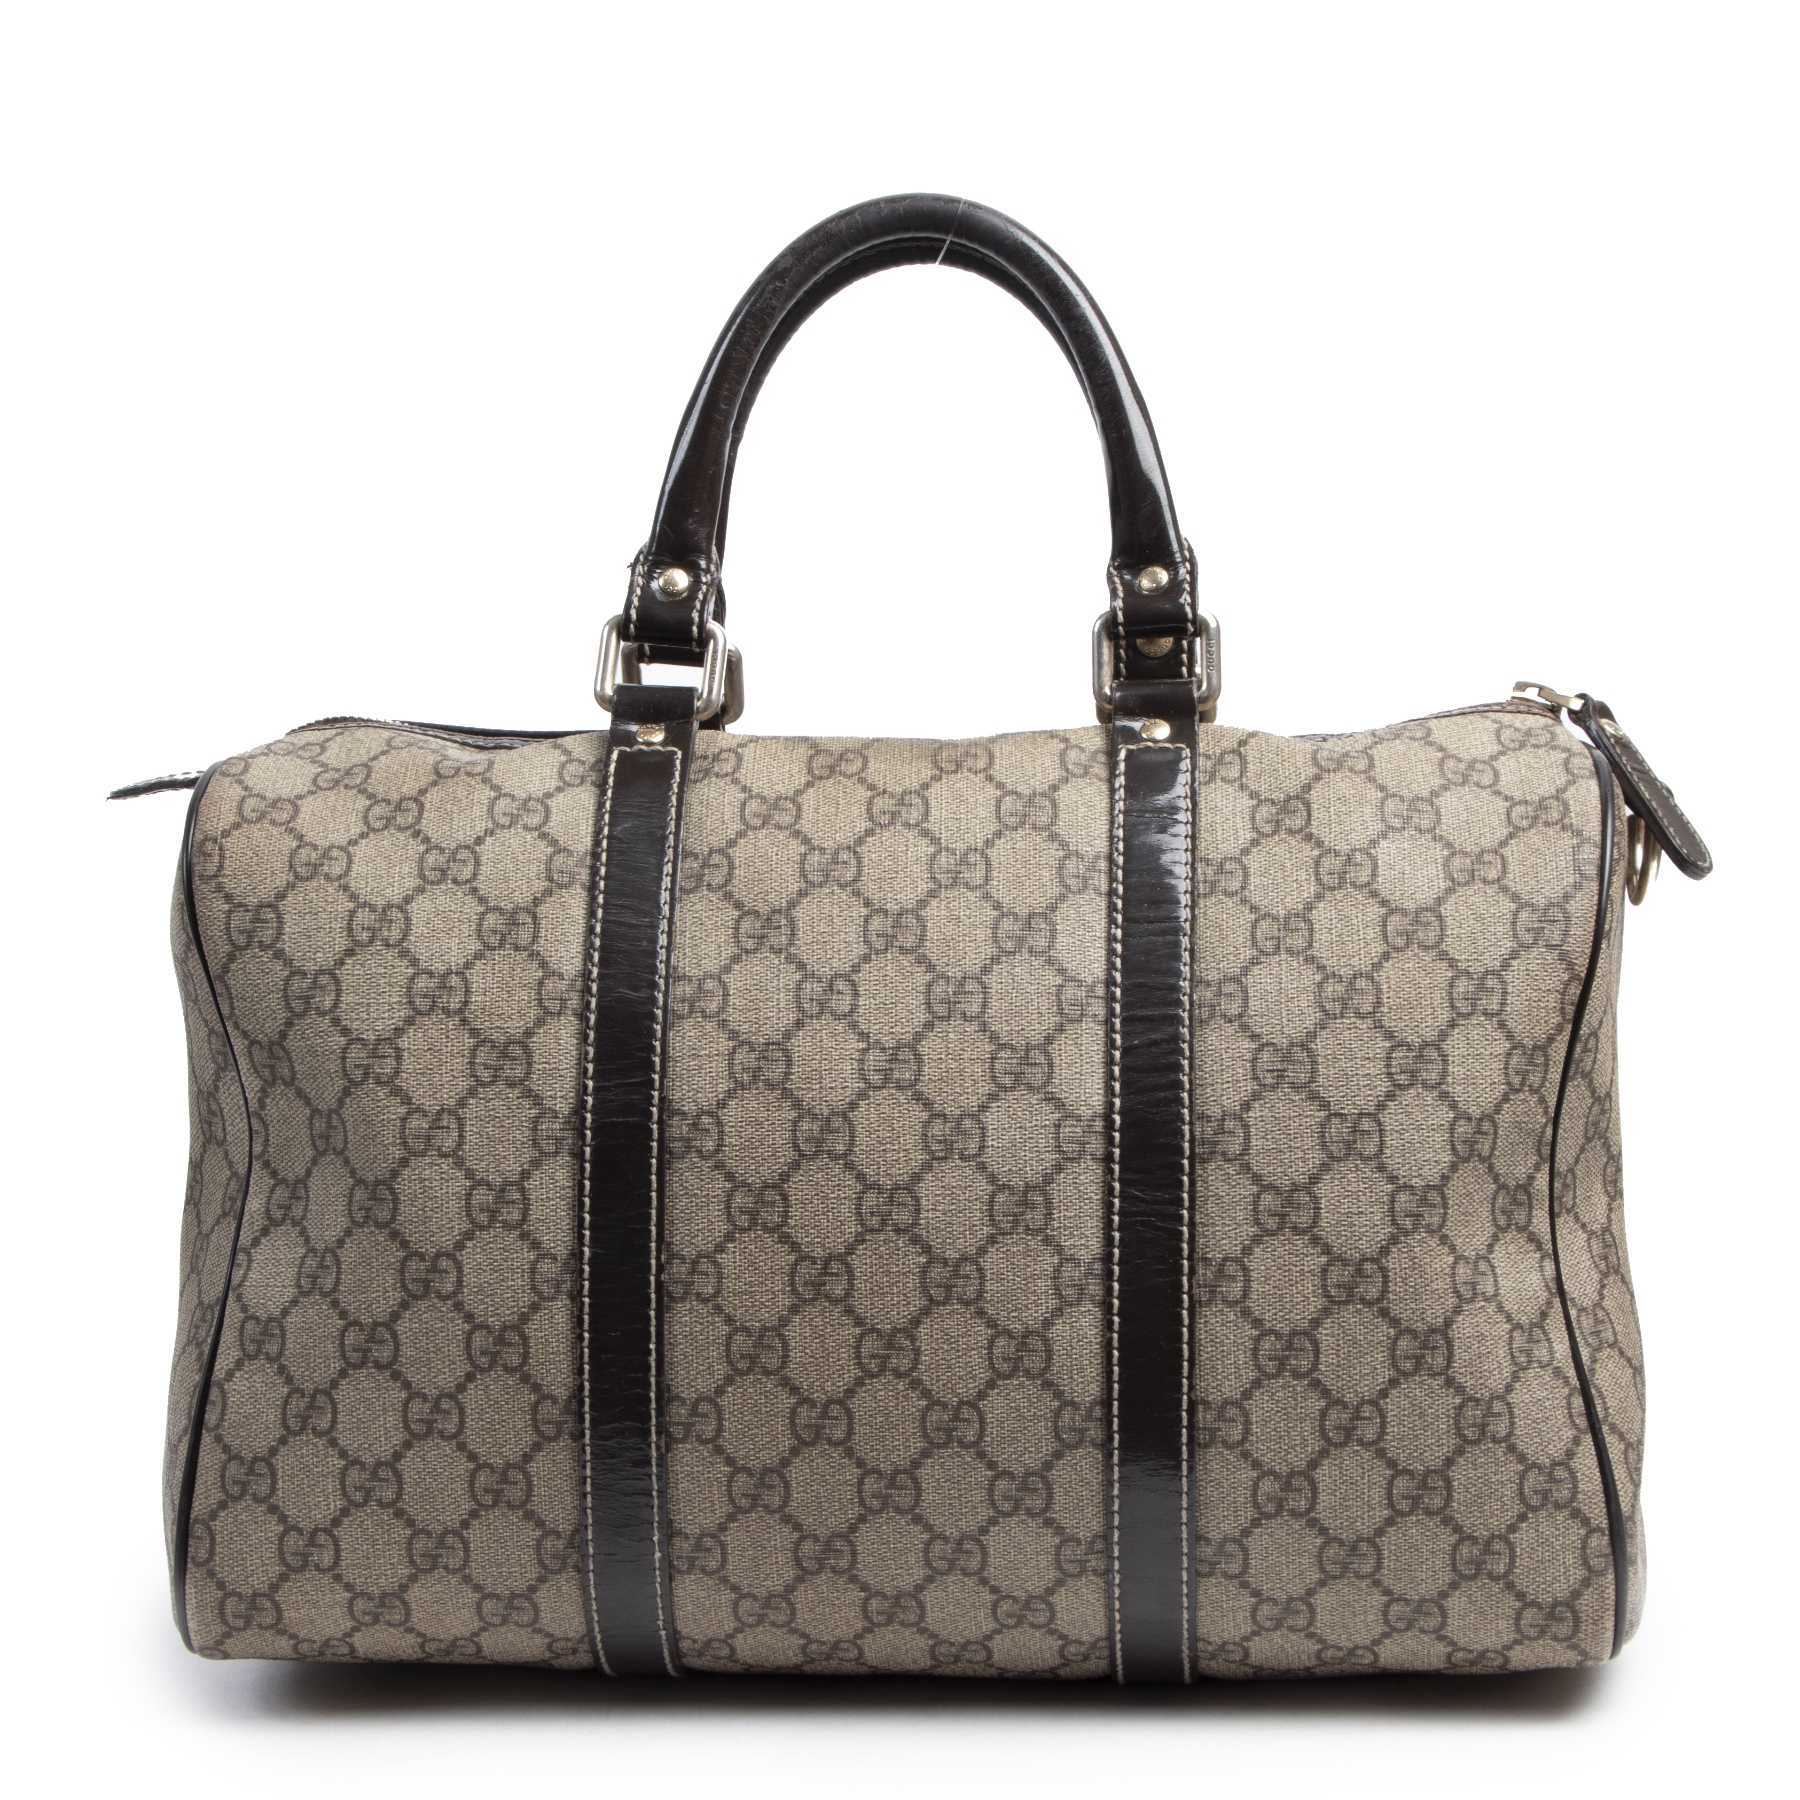 acheter en ligne seconde main Gucci GG Monogram Boston Bag